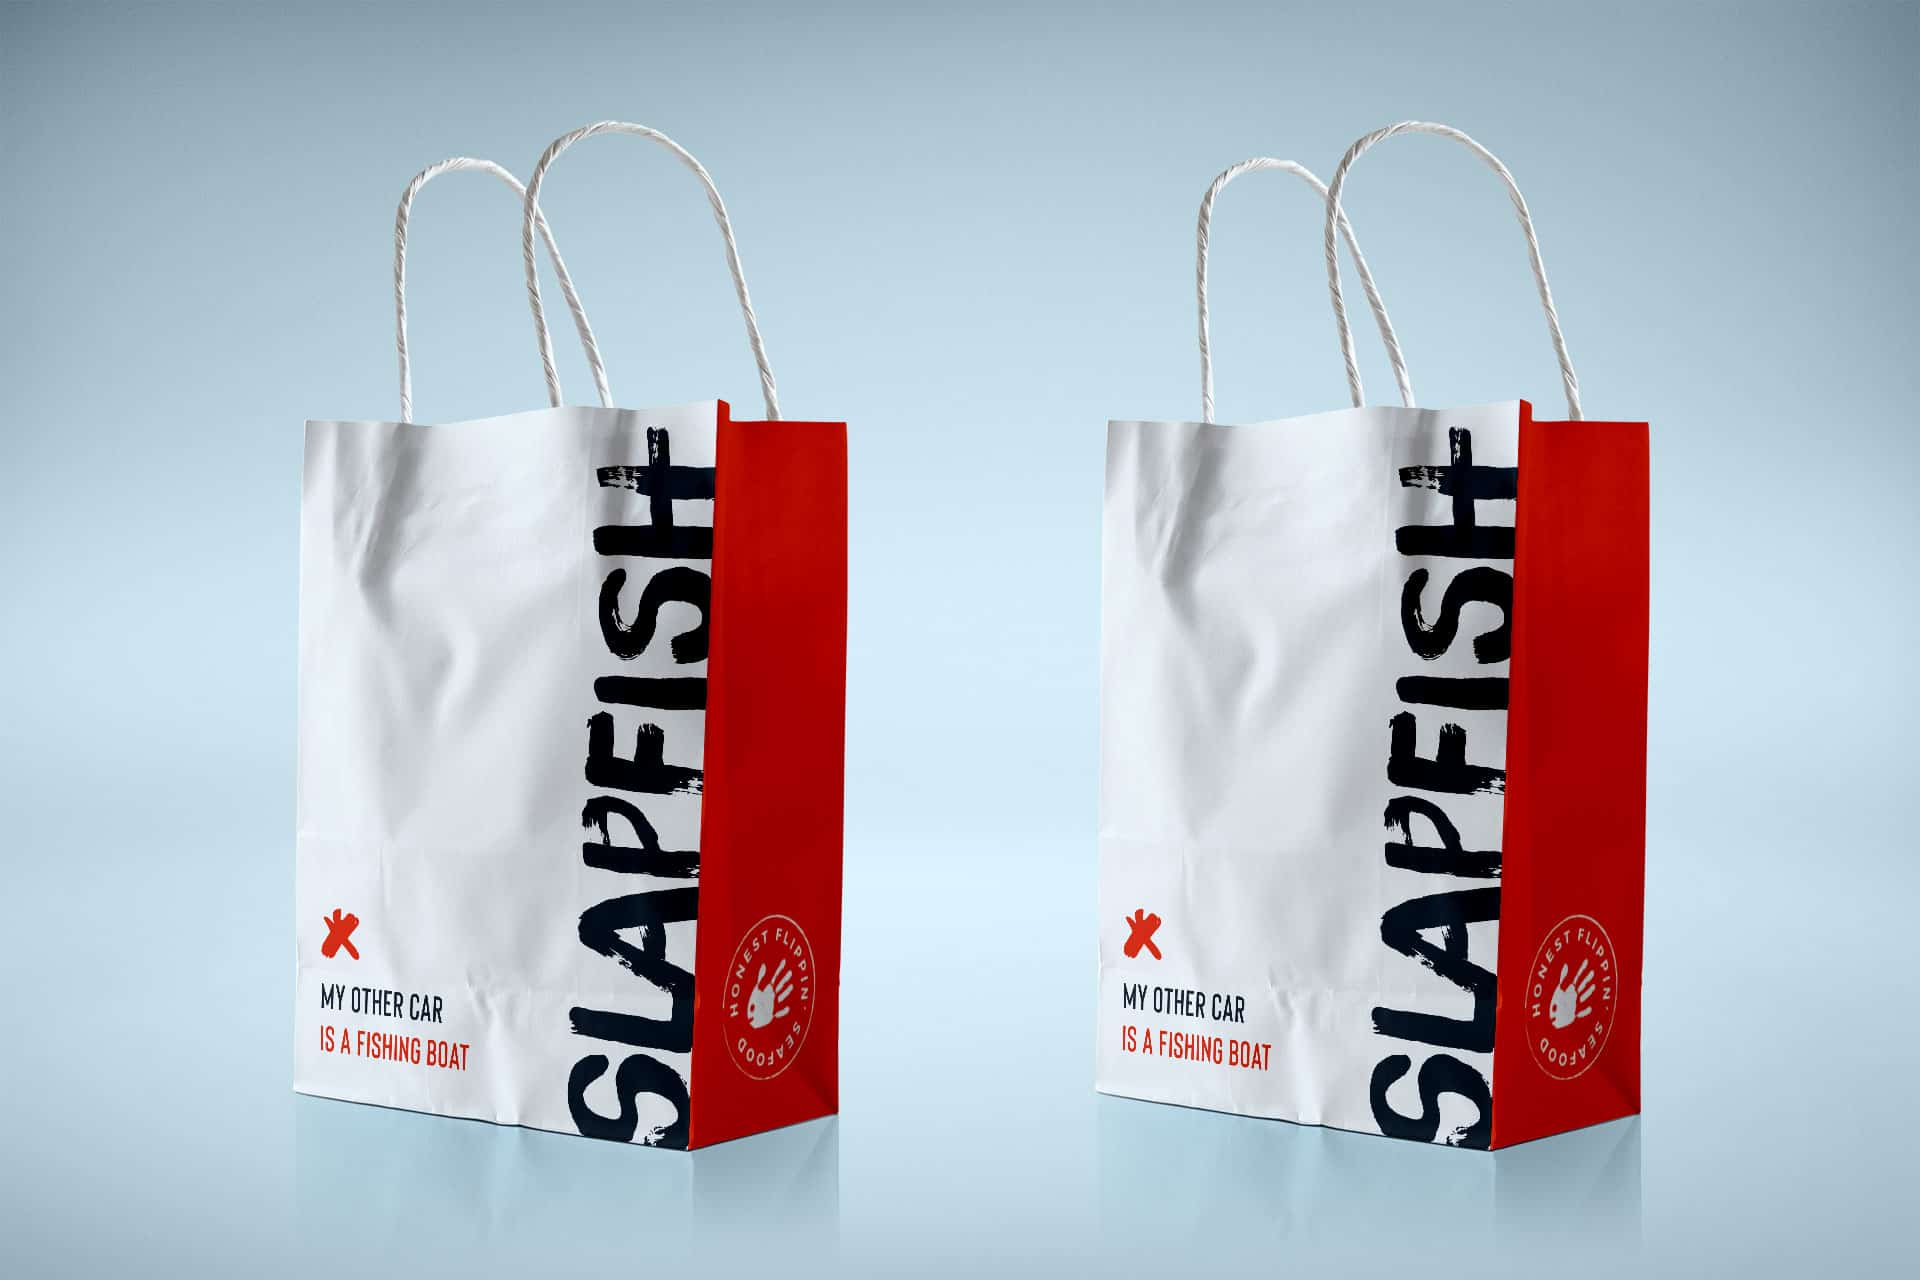 SlapFish seafood restaurant takeout packaging design